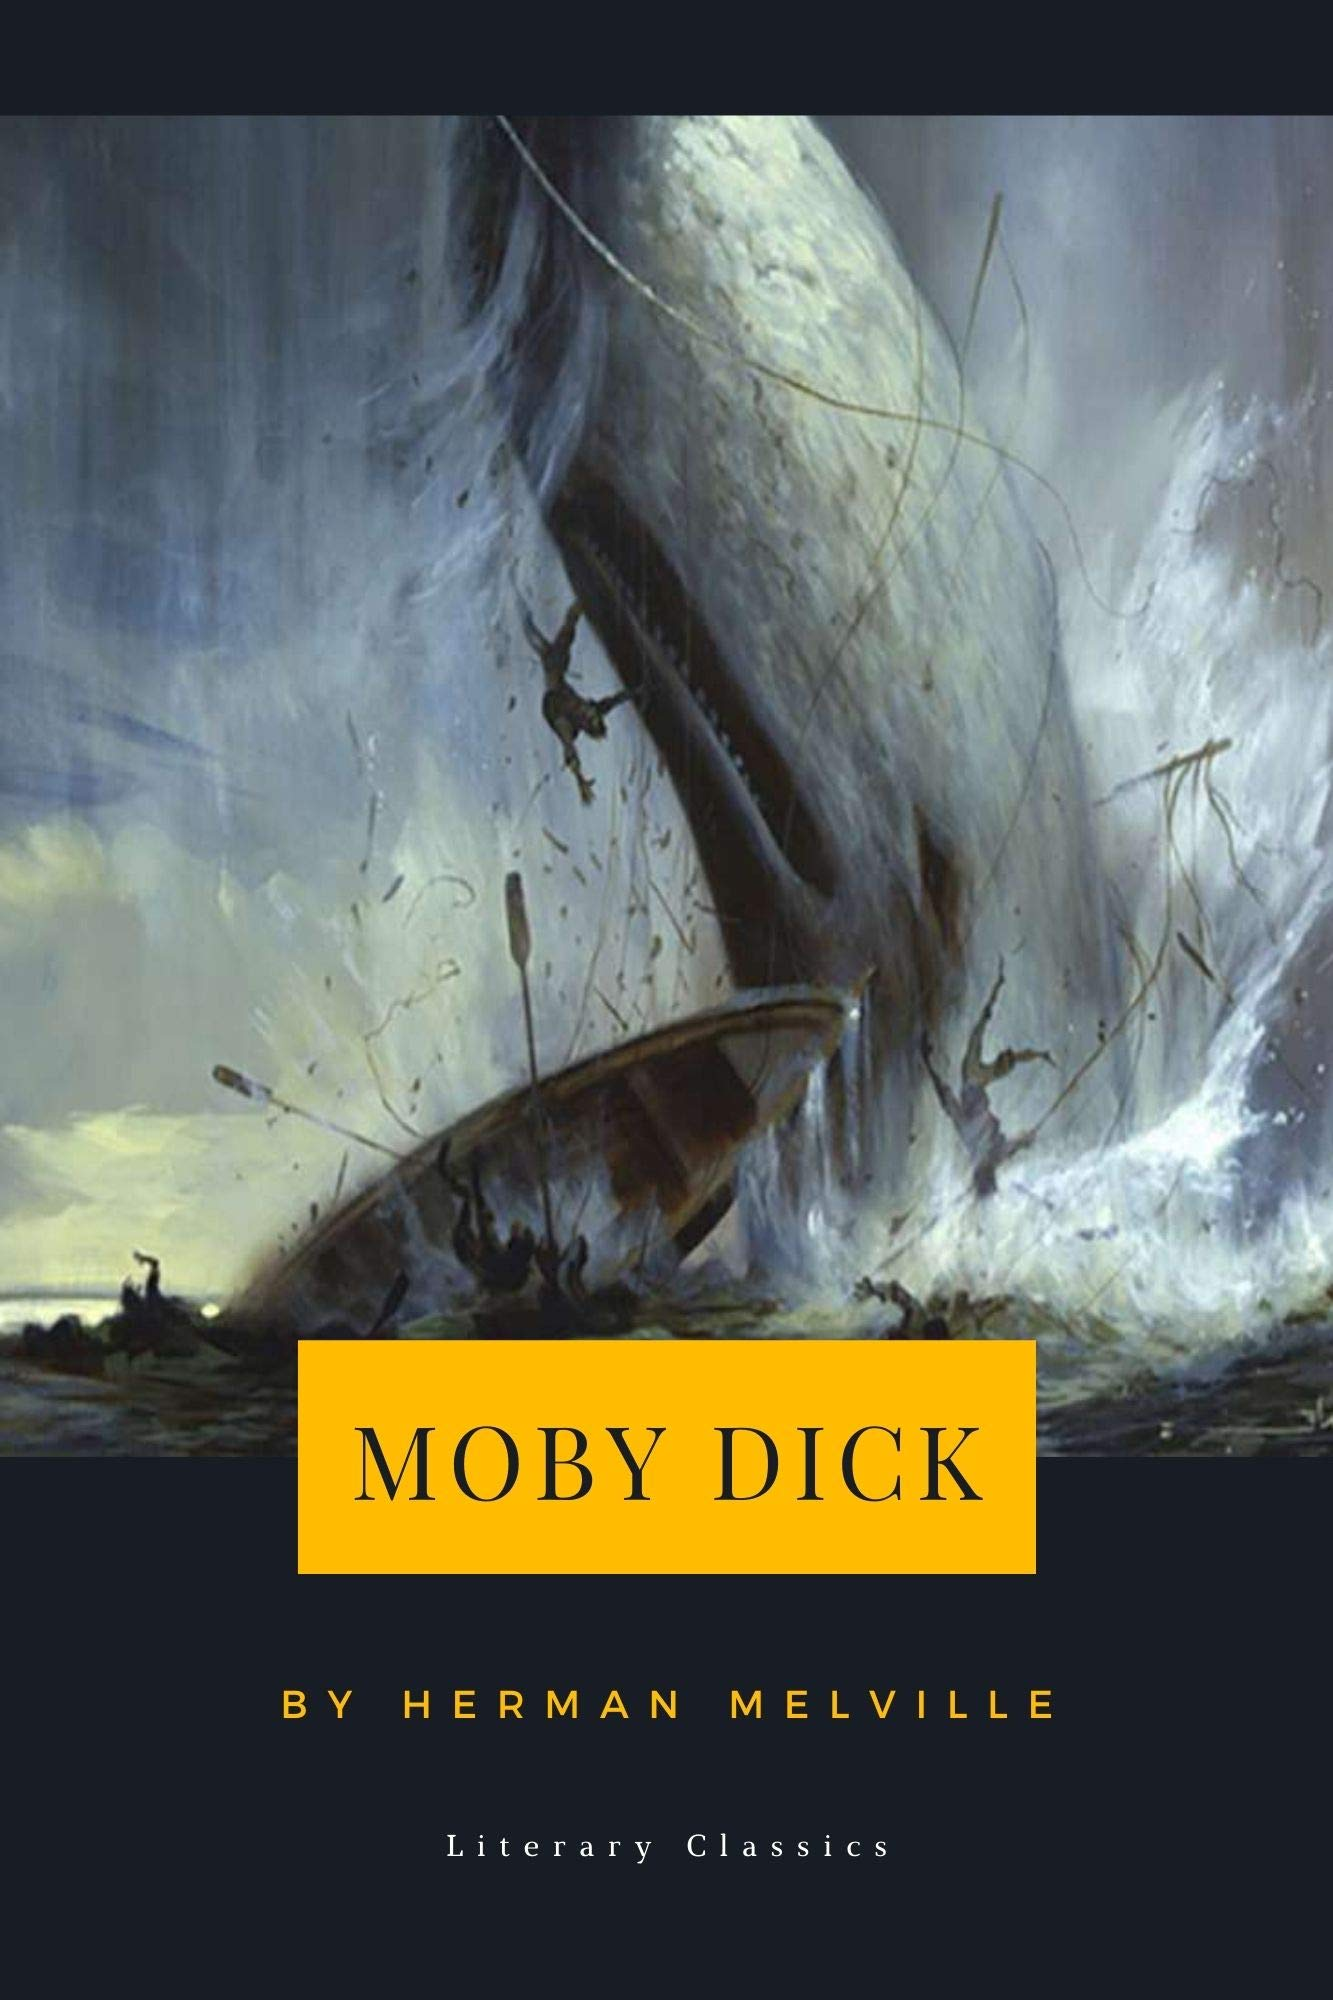 Moby Dick (Herman Melville) (Literary Thoughts Edition)